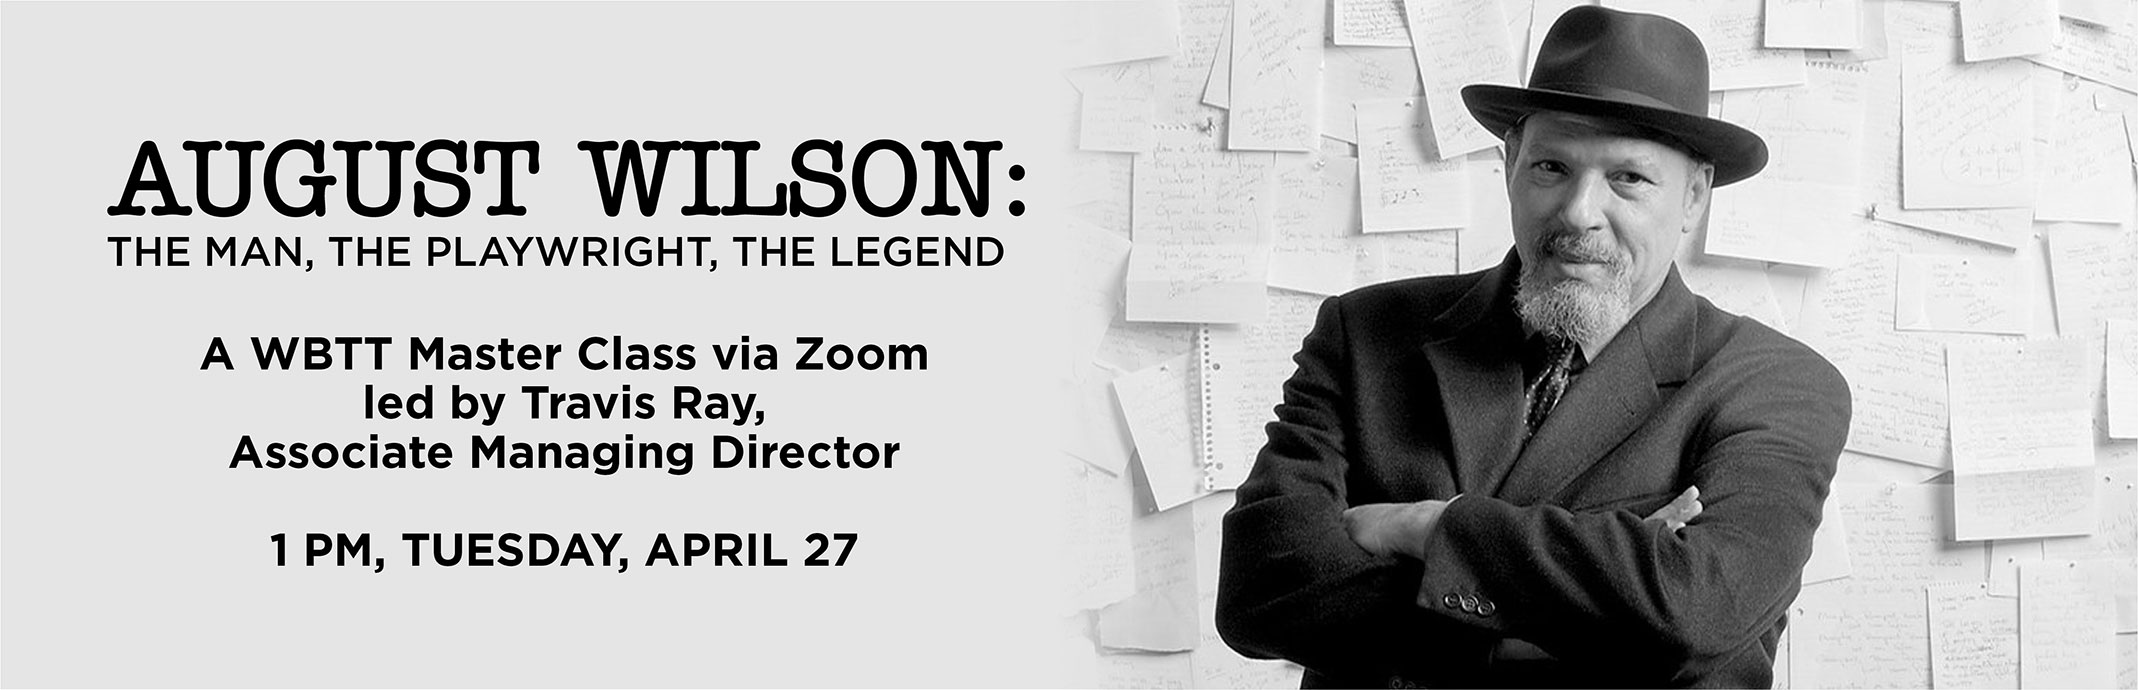 August Wilson, 1pm, Tuesday, April 27